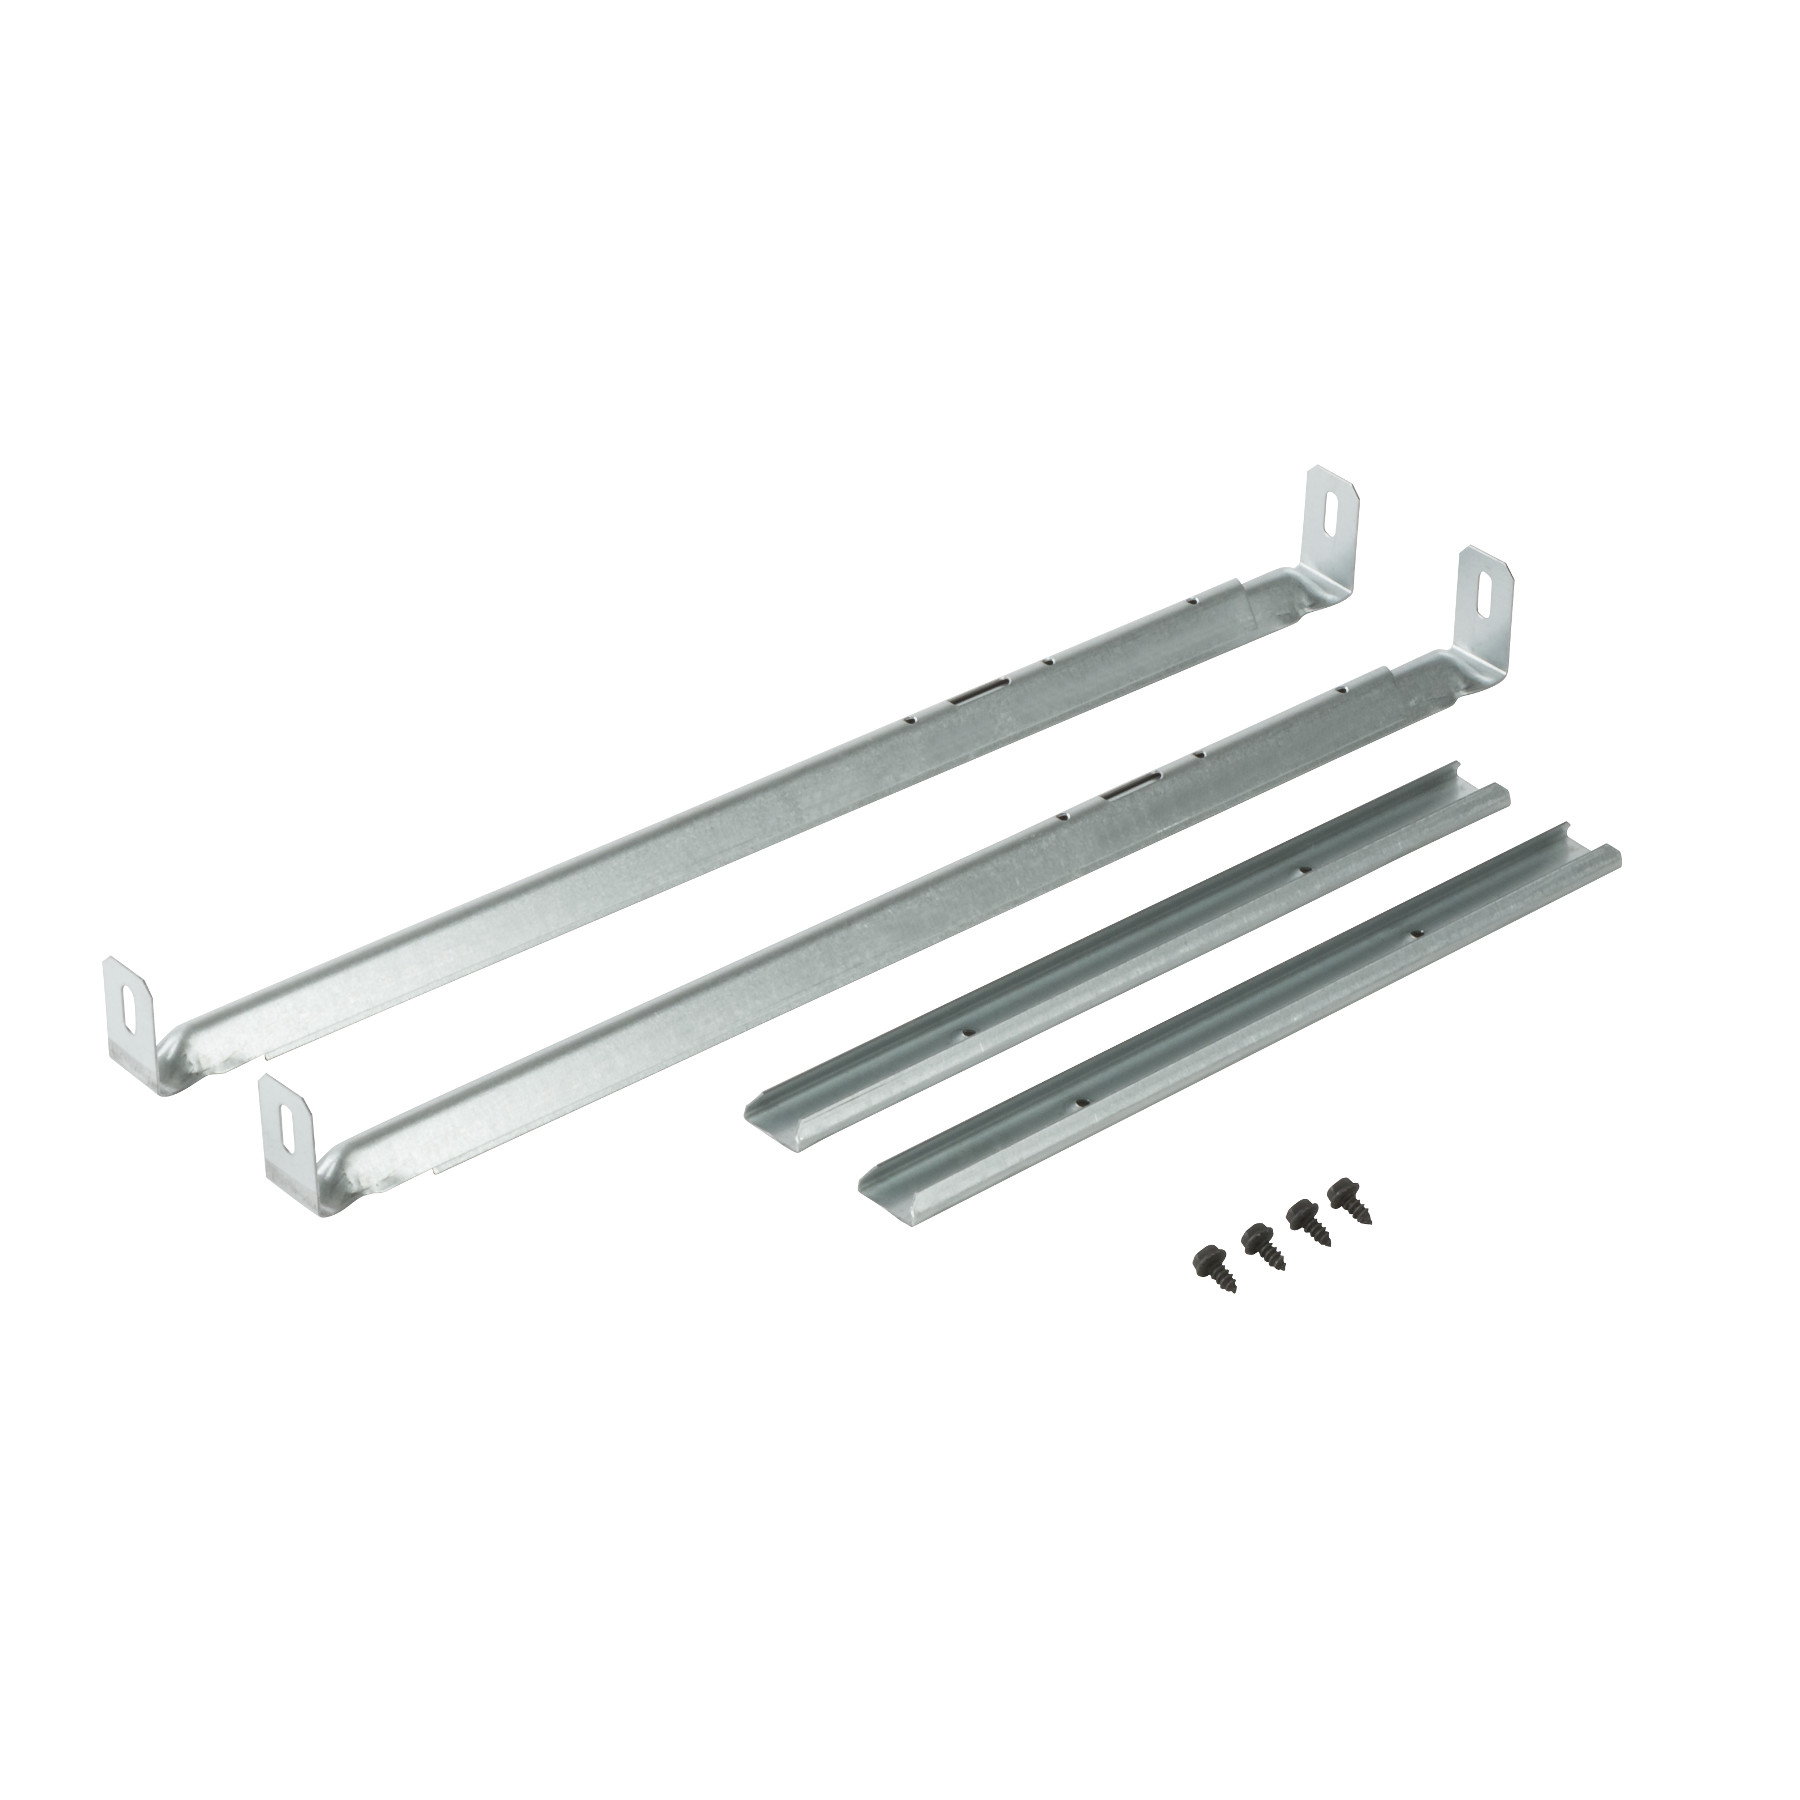 Broan-NuTone® Roomside Series Hanger Bars